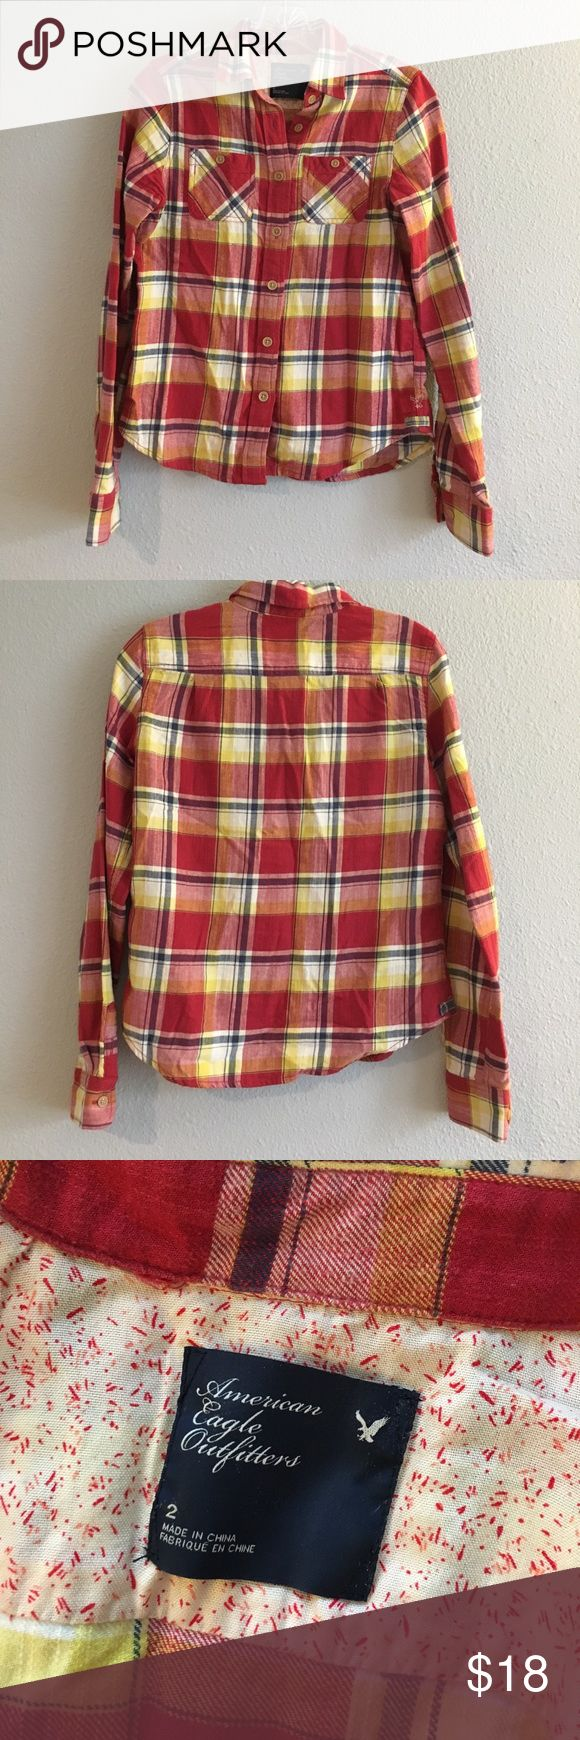 Red Plaid Flannel American Eagle Shirt Excellent used condition! The perfect plaid flannel shirt from American Eagle Outfitters. Red, yellow, white, and navy plaid. Two front chest pockets. Very cozy and comfy! American Eagle Outfitters Tops Button Down Shirts